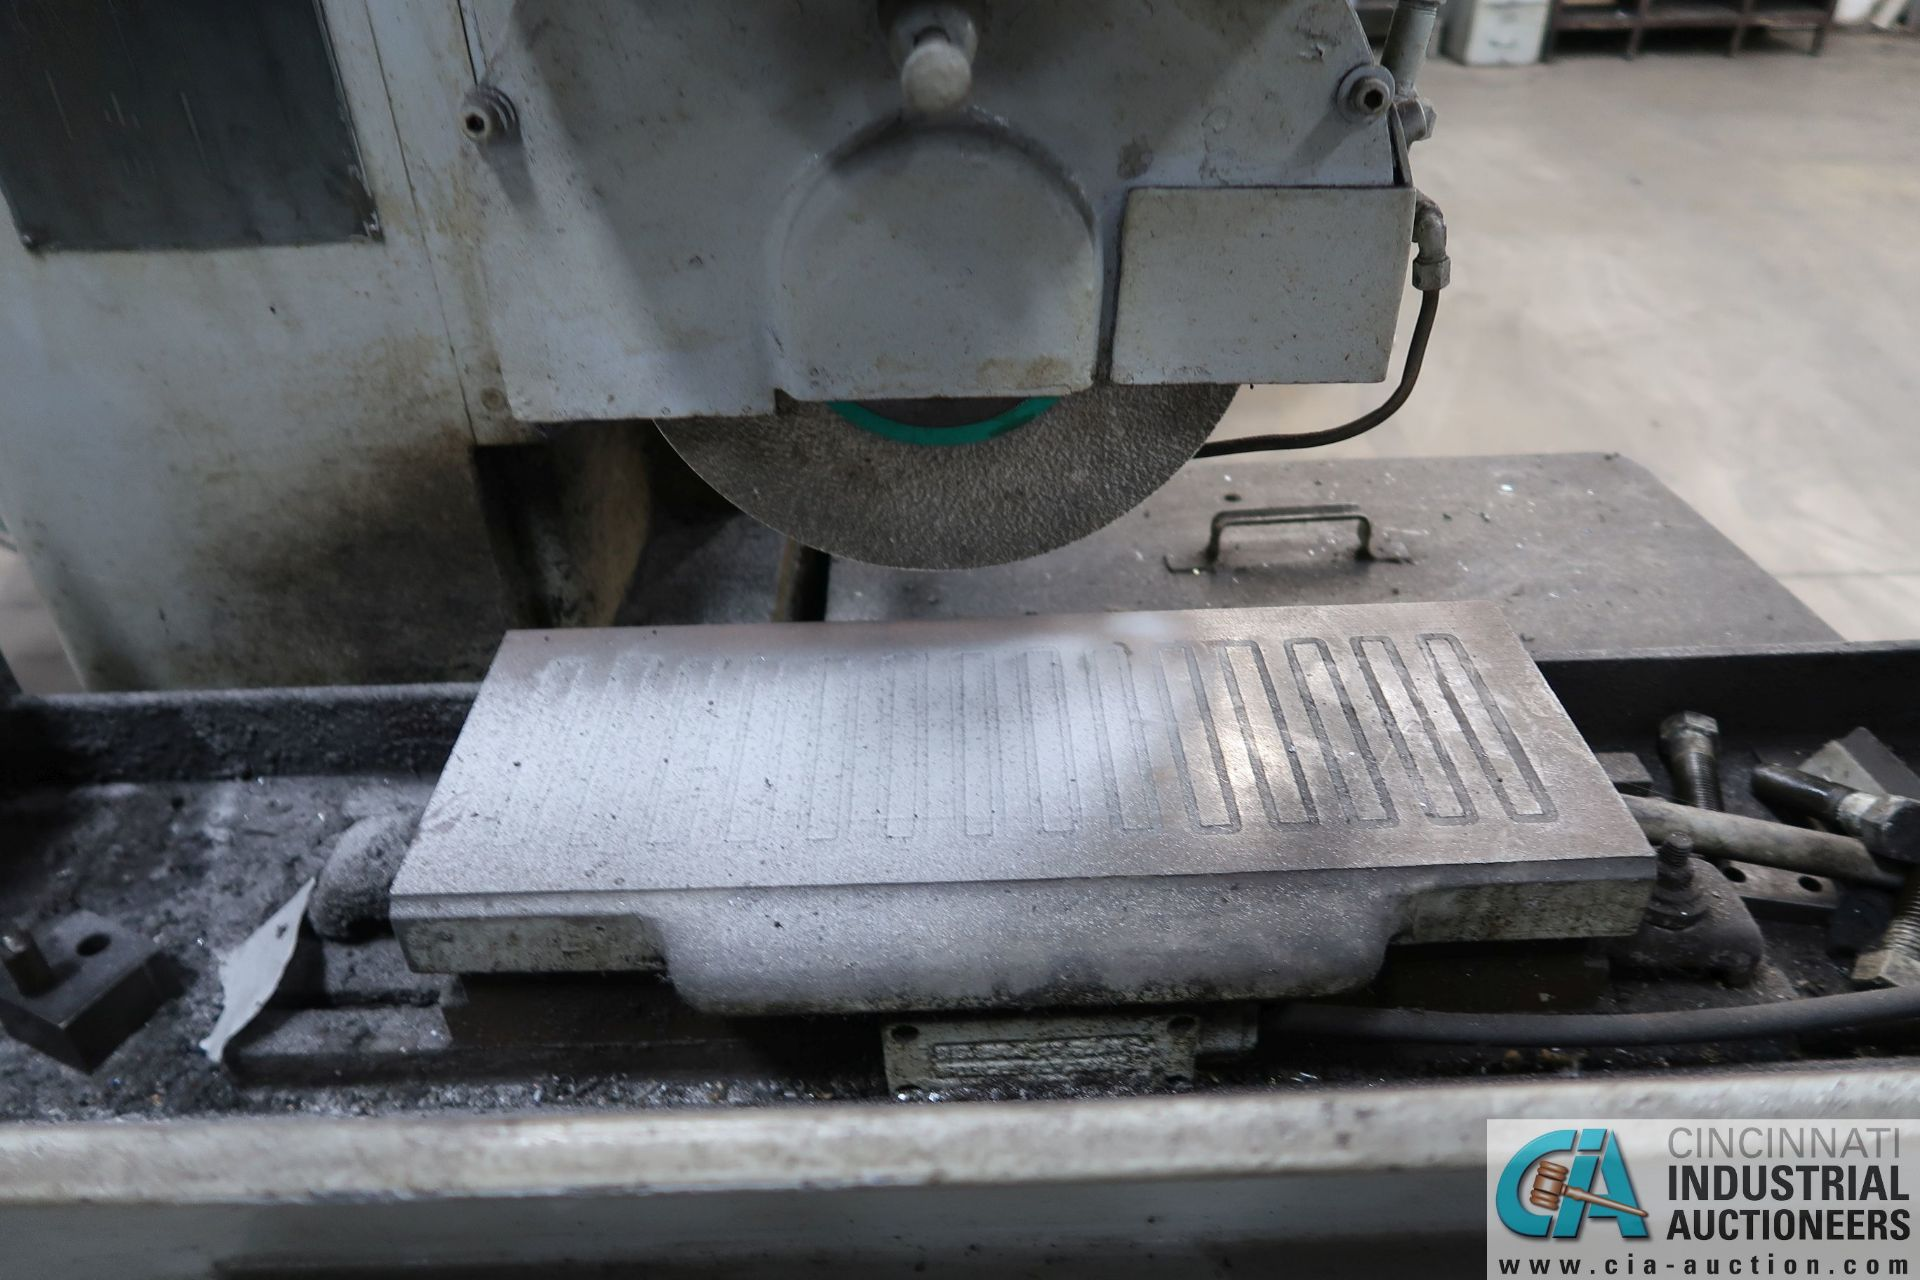 """6"""" X 18"""" THOMPSON HAND FEED SURFACE GRINDER; S/N F46258, 220 VOLTS, 3-PHASE, 1-1/2 HP MOTOR - Image 5 of 10"""